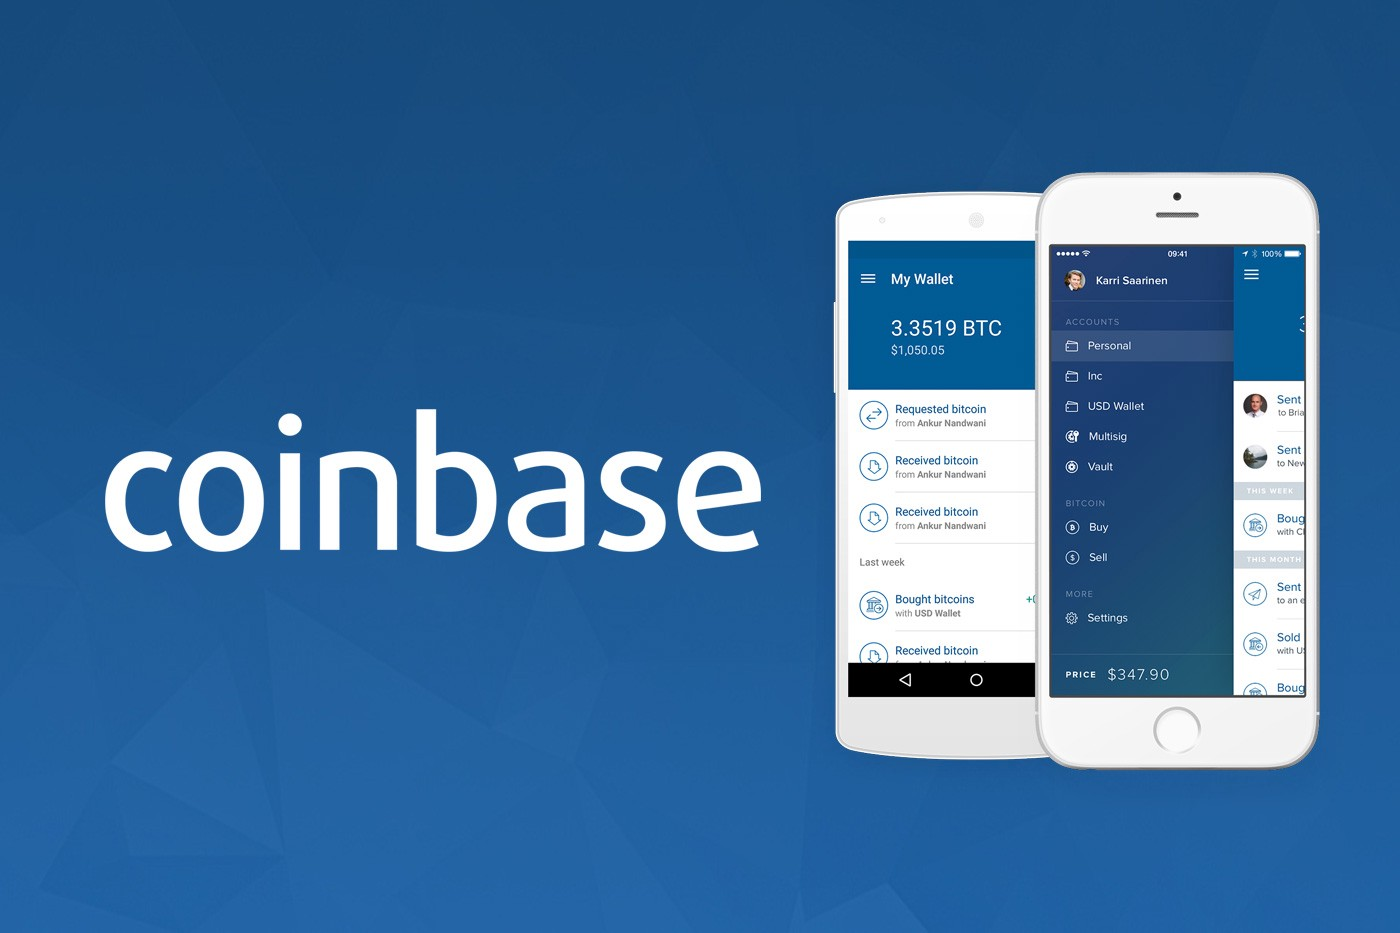 /why-coinbase-cant-provide-accurate-tax-information-to-millions-of-its-users-ce99a92ab856 feature image